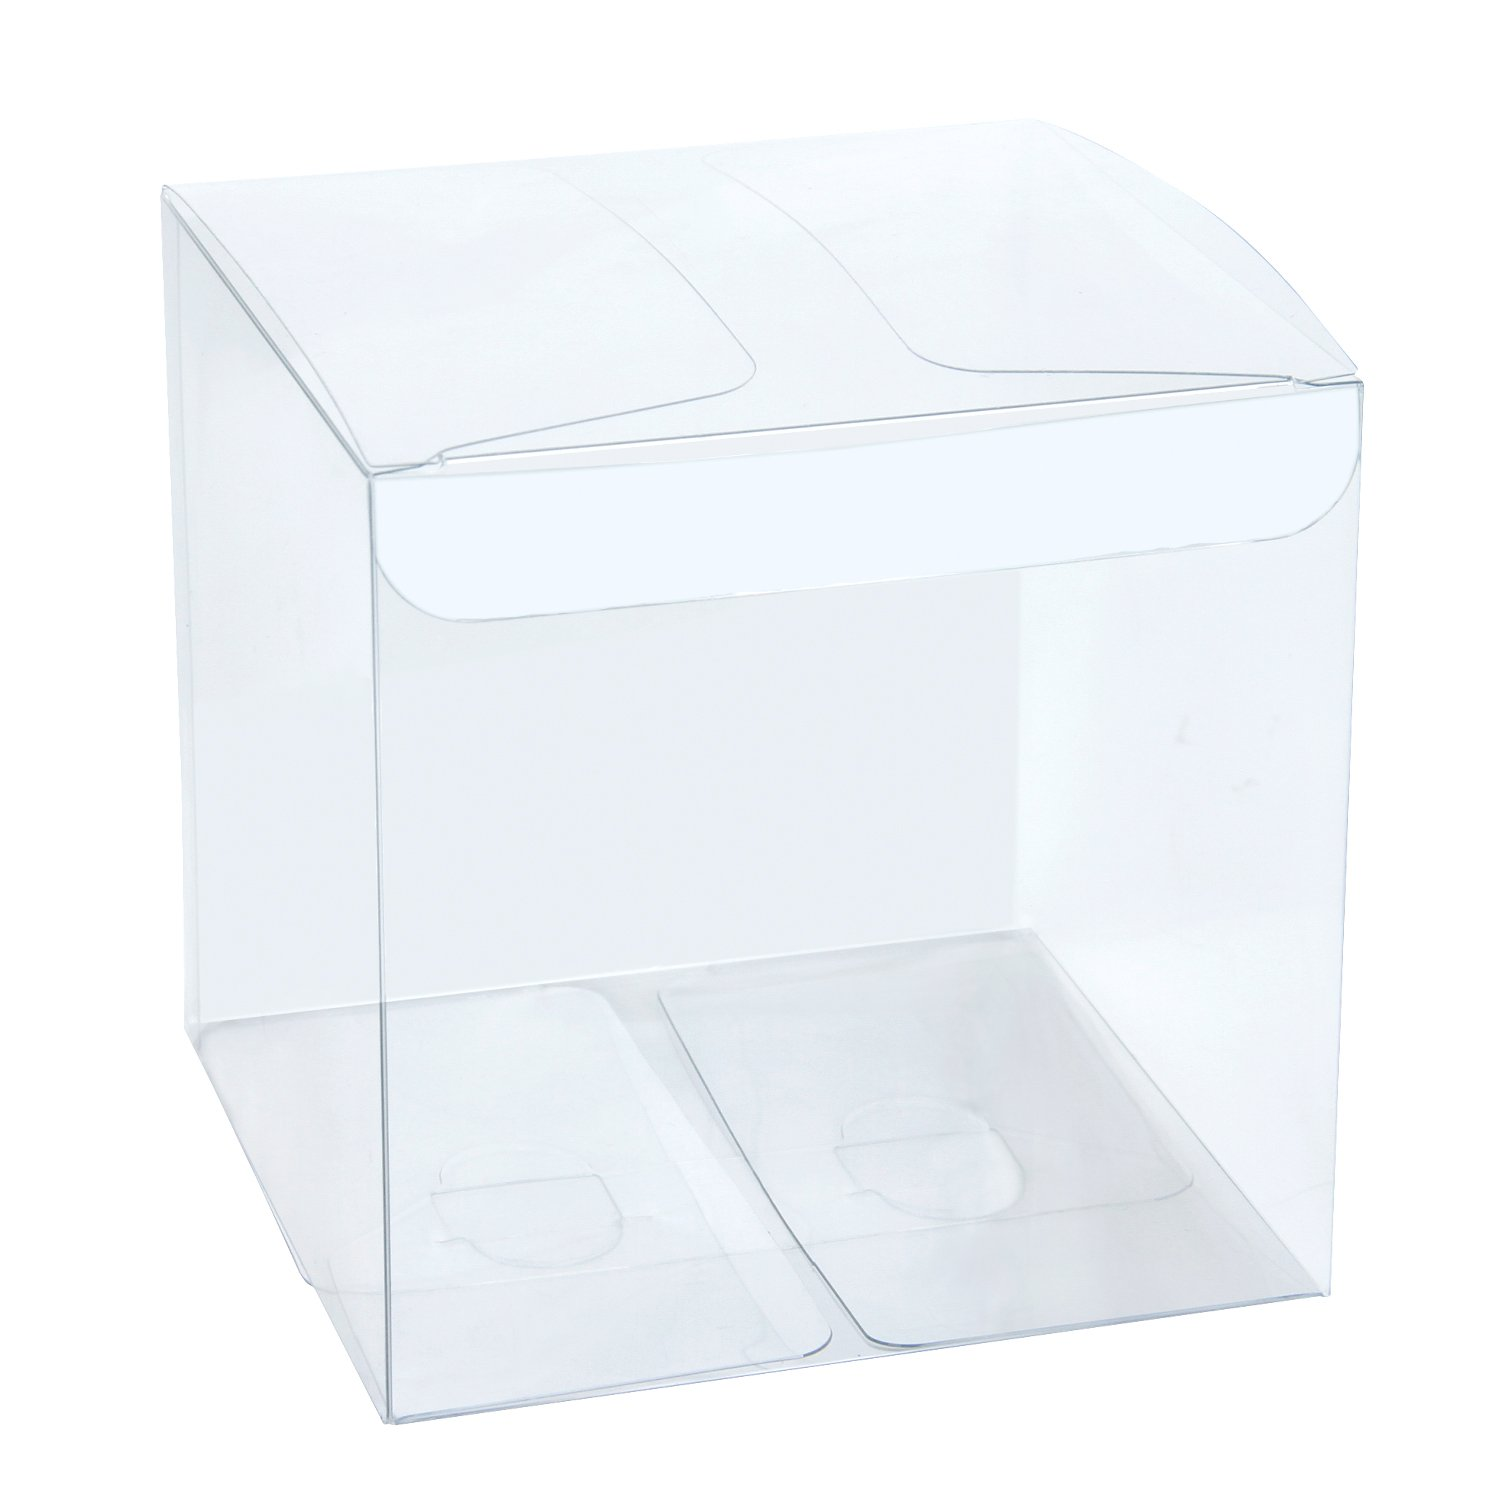 LaRibbons 30Pcs PET Clear Box, Transparent Boxes, Candy Box, Clear Gift Boxes for Wedding, Party and Baby Shower Favors, 4'' L x 4'' W x 4'' H by LaRibbons